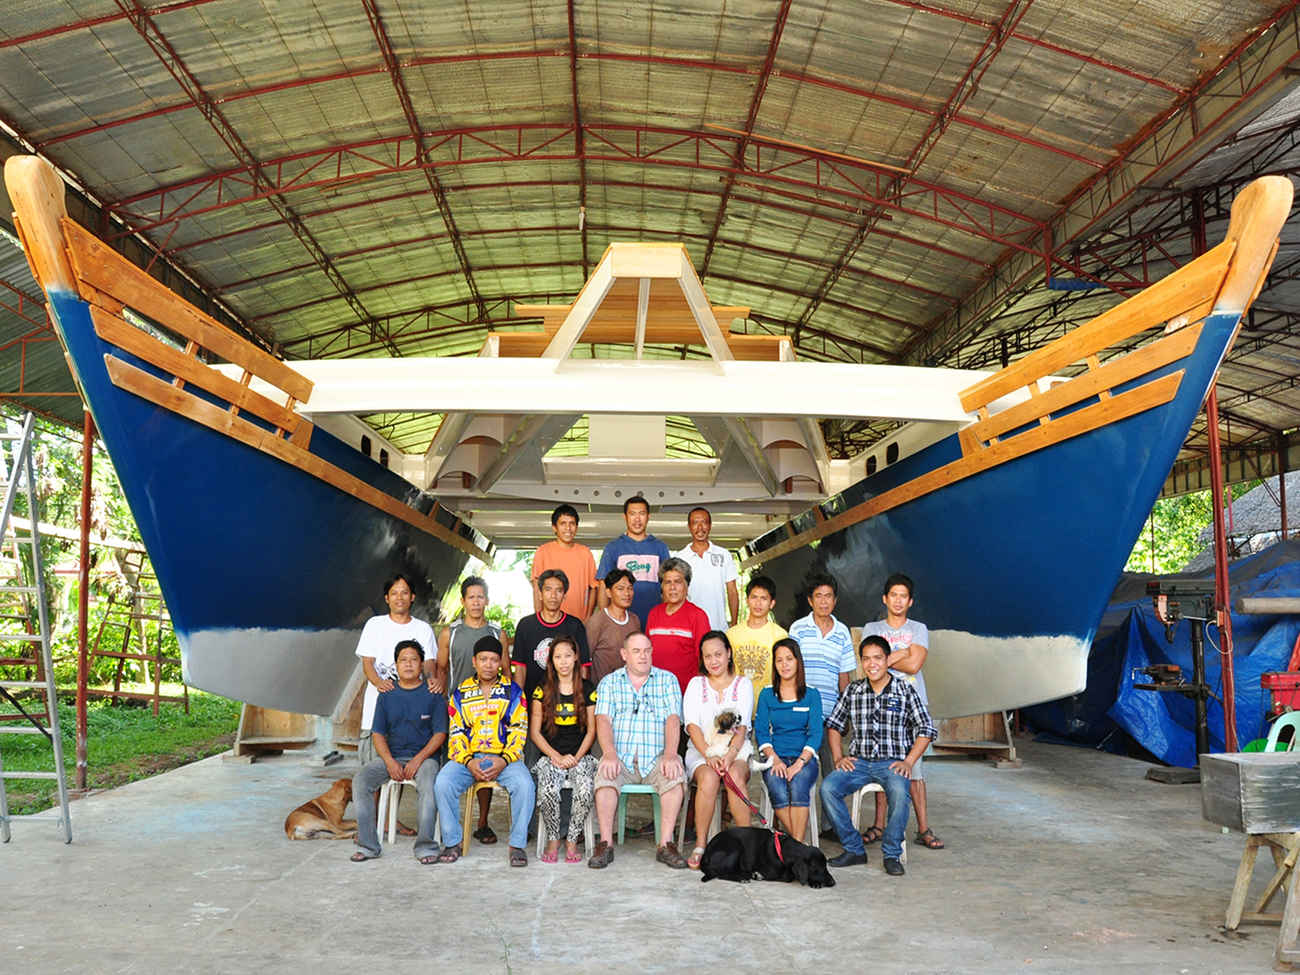 The Andy Smith Boatworks crew, posing for a photo under two large catamaran hulls